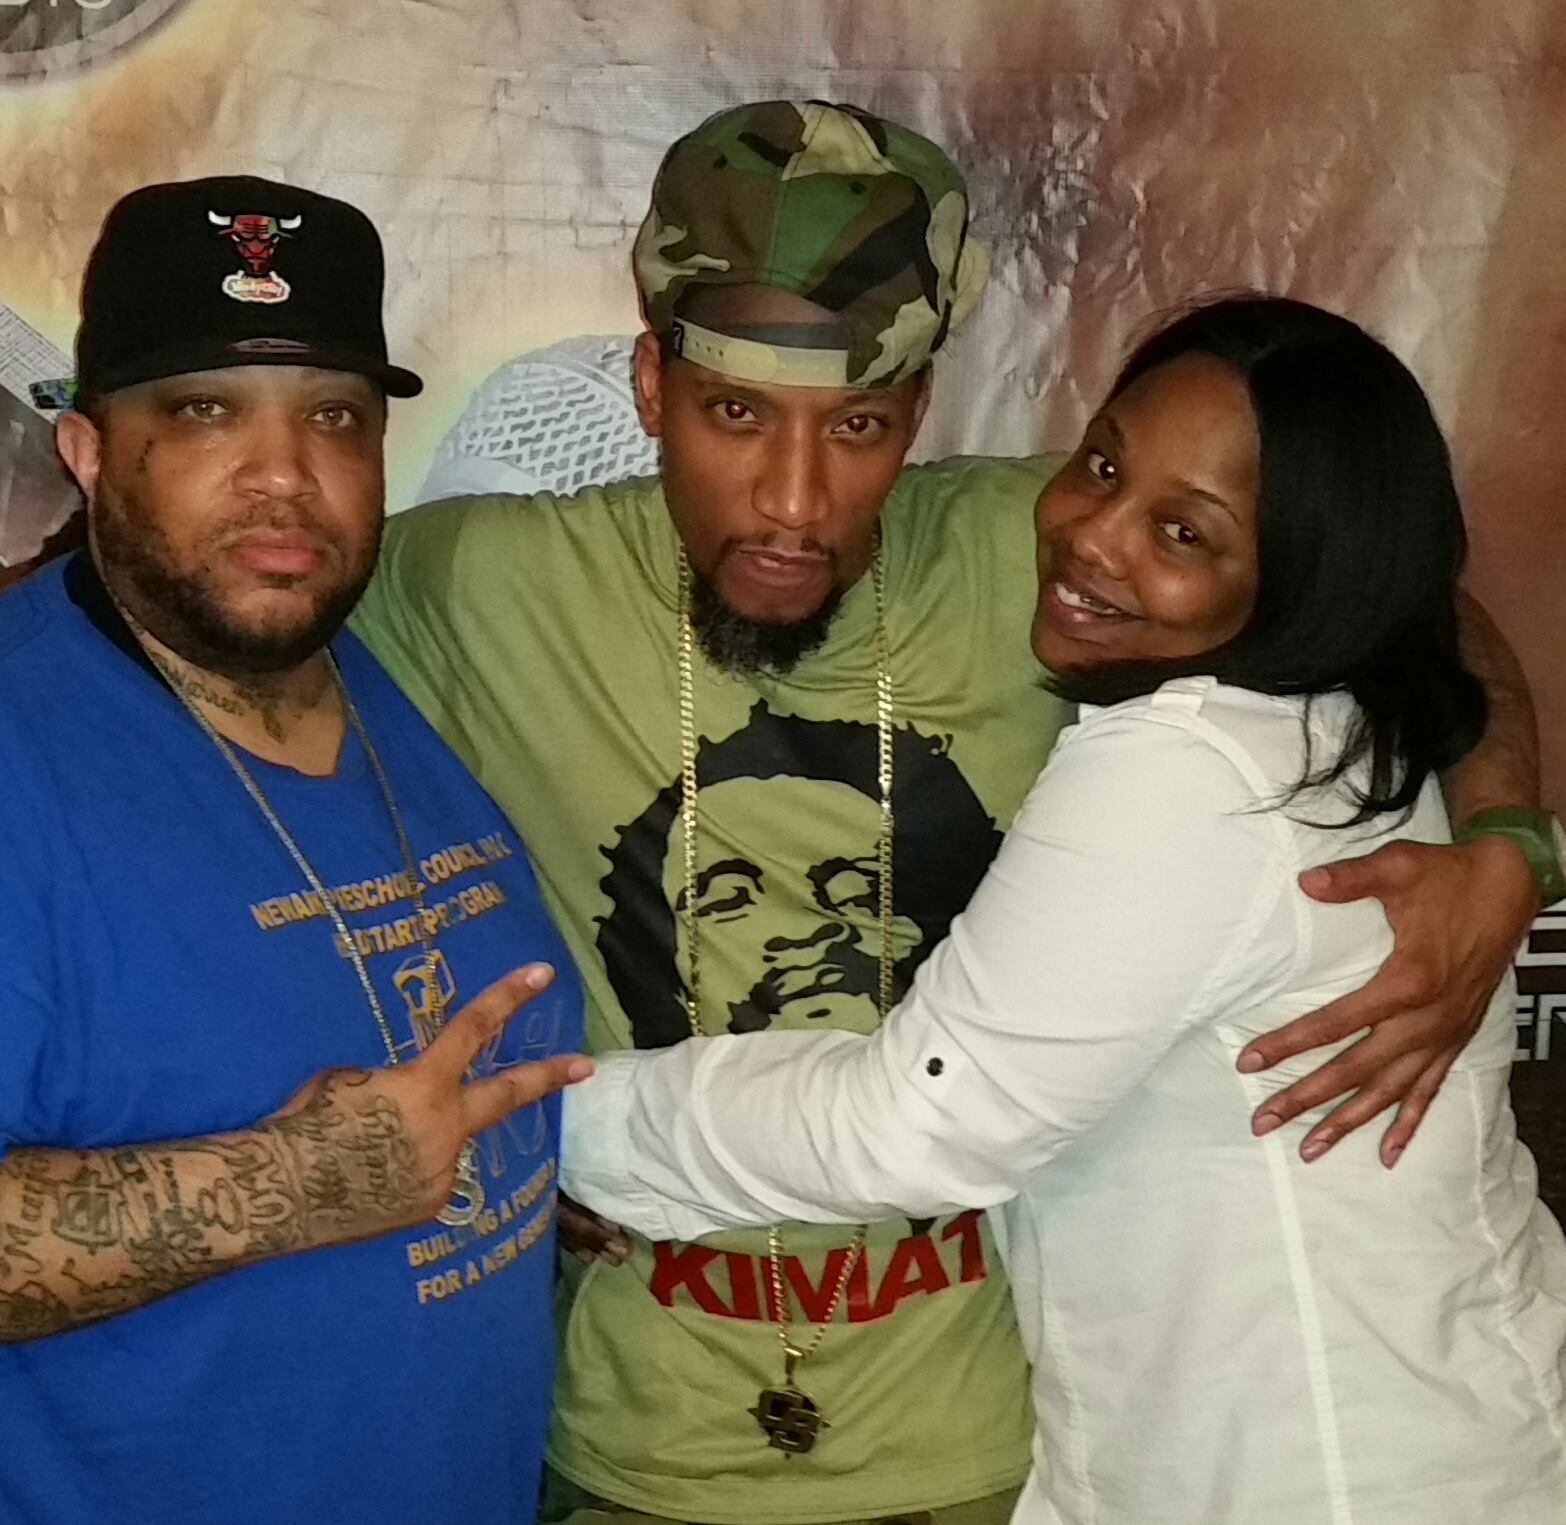 Big Zay Legendary General Steele from the Hip Hop group Smif-n-Wessun plus Brandy K